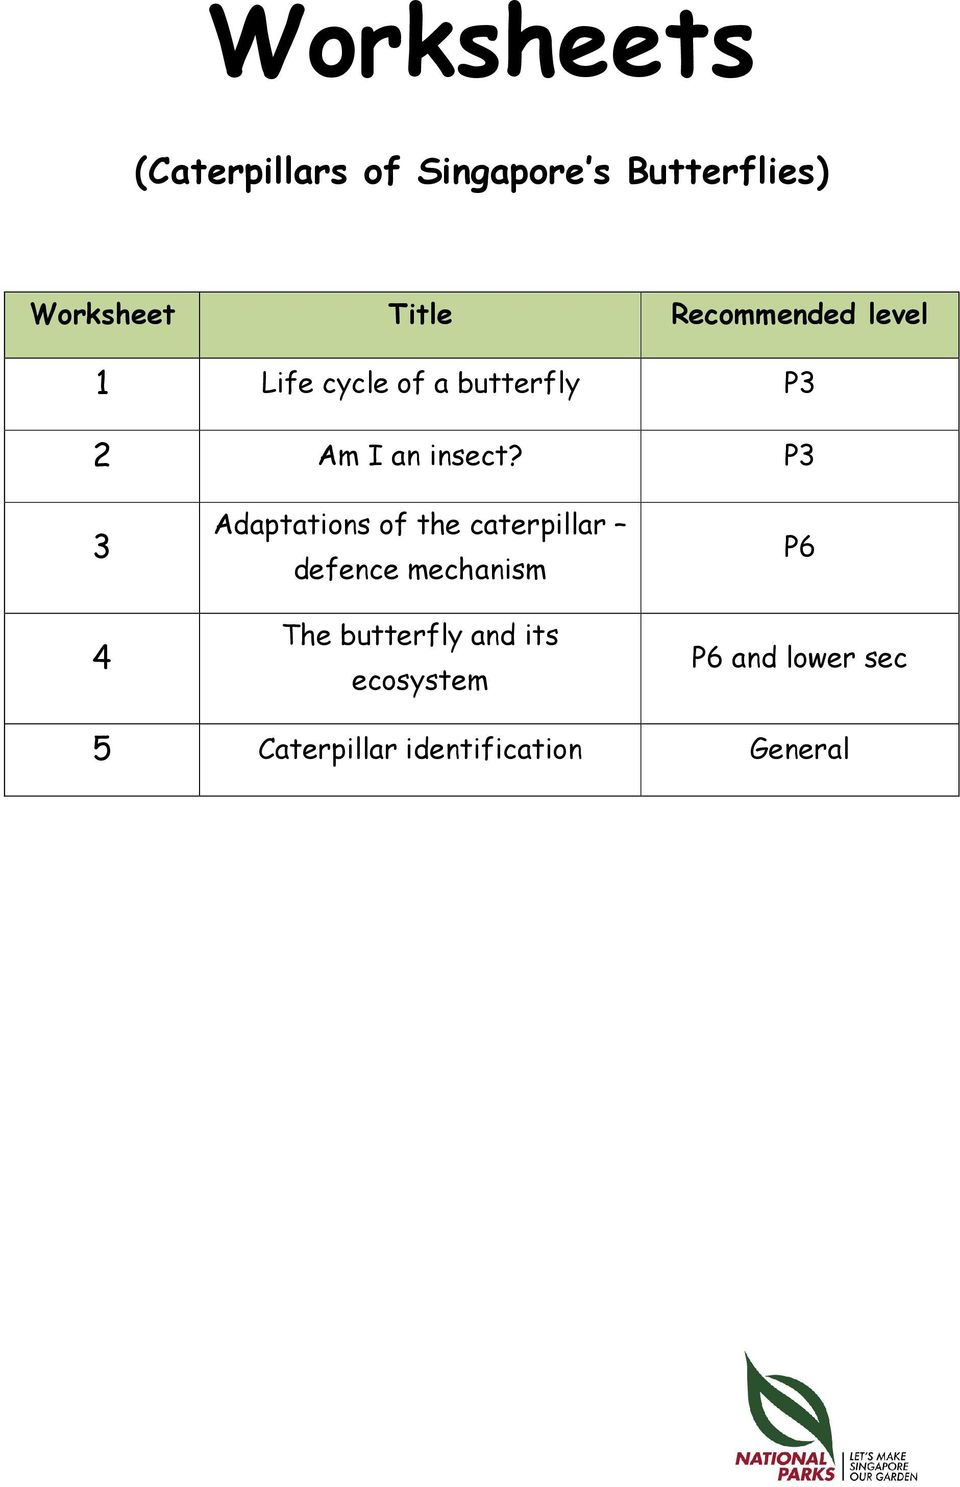 Worksheets Caterpillars Of Singapore S Butterflies Worksheet Title Recommended Level Adaptations Of The Caterpillar Defence Mechanism Pdf Free Download